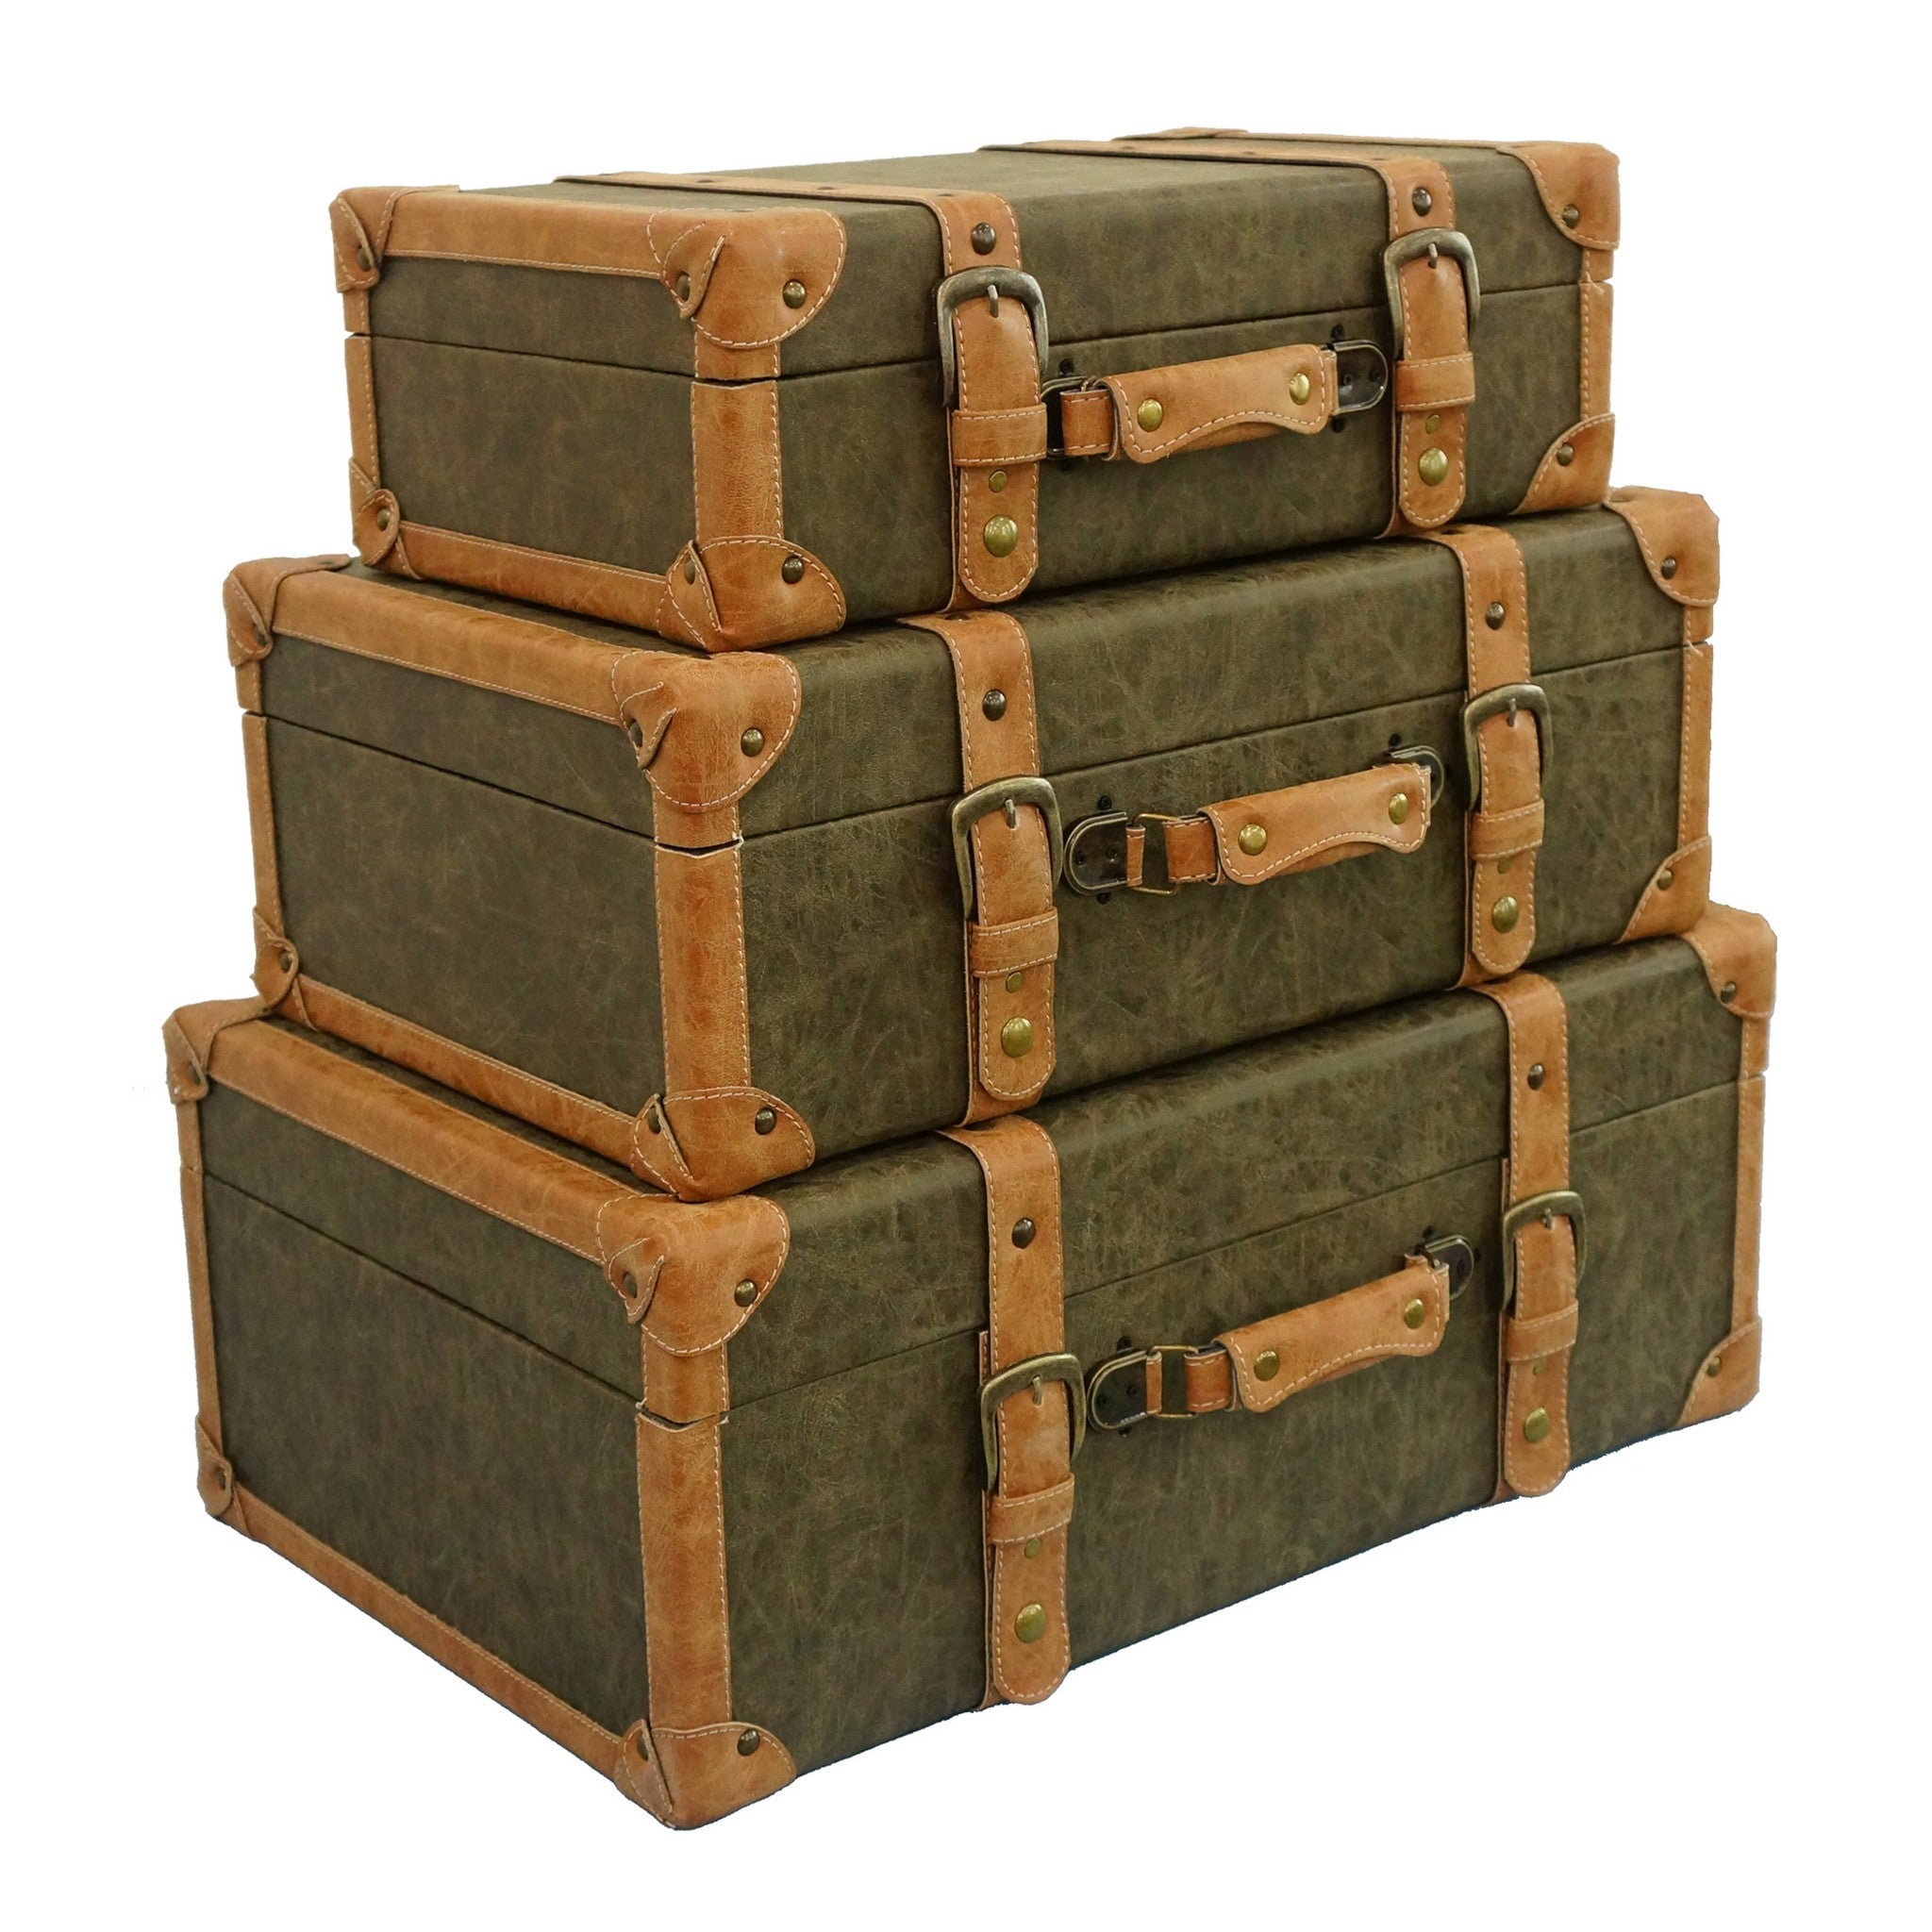 Set of 3 Olive Storage Trunks With PU Leather Covering